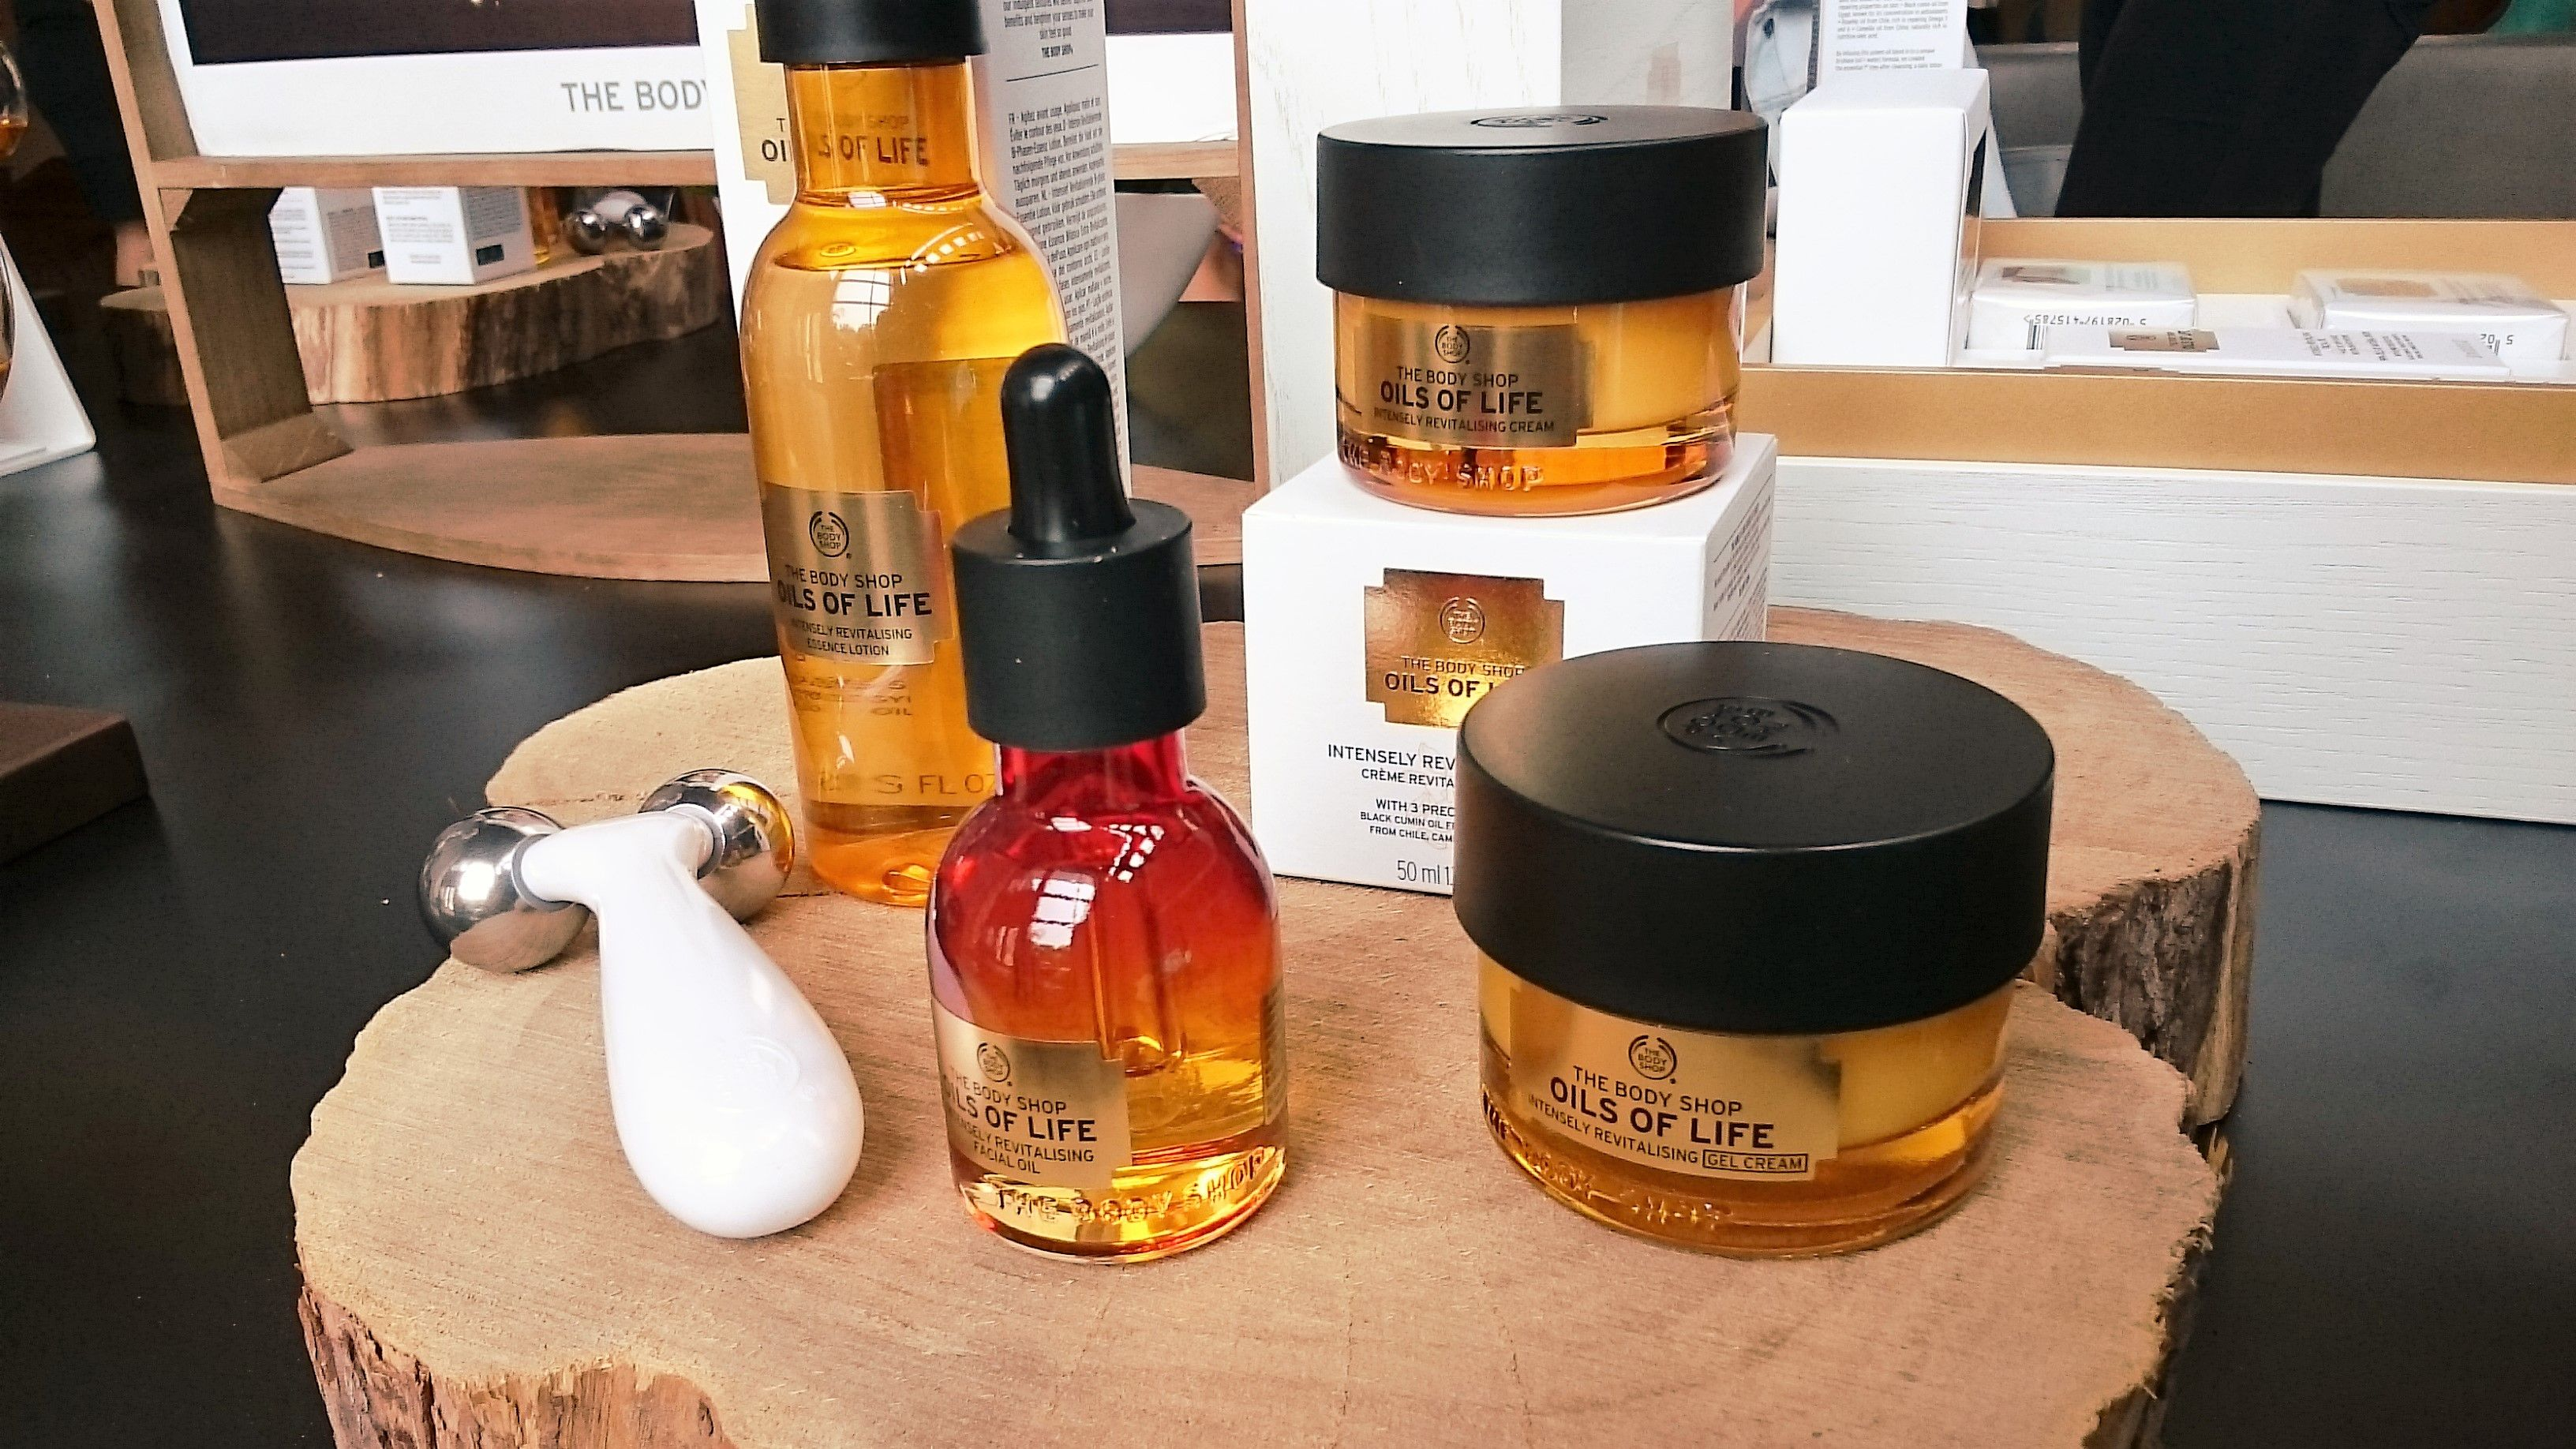 Serendipity – The Body Shop launch of the Oils of Life / Spa